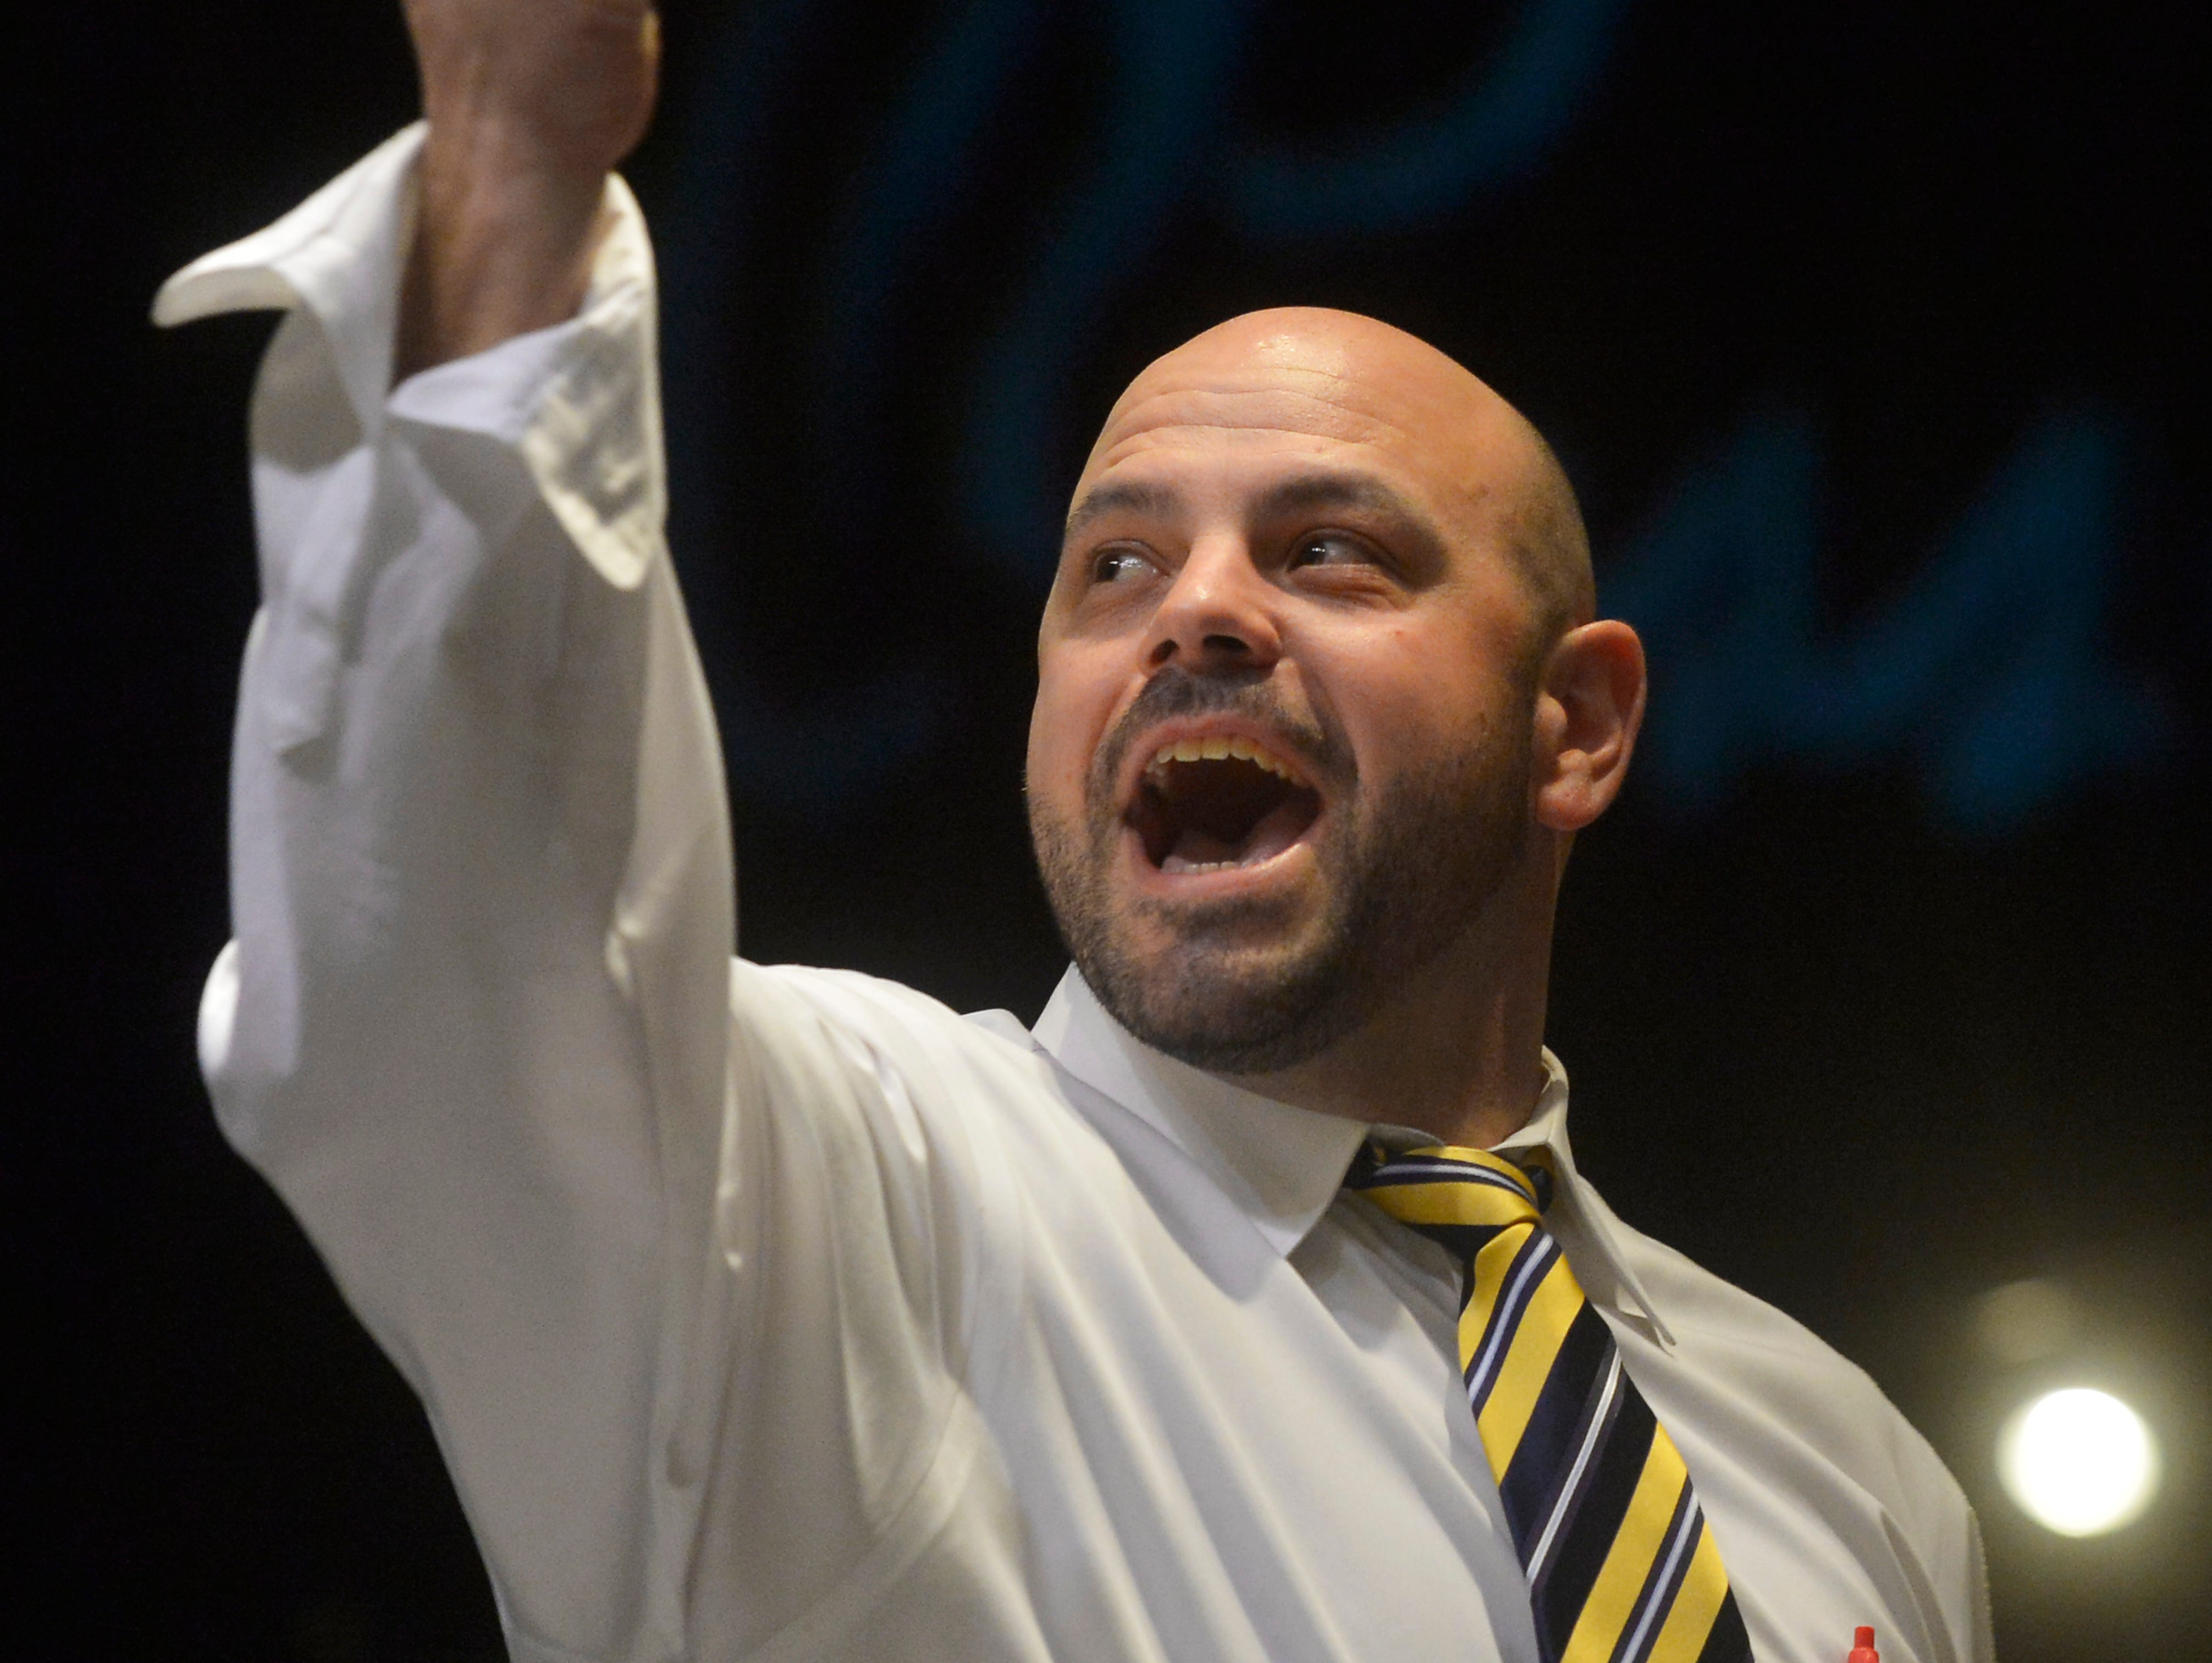 A spotter with Black and Associates Auctioneers calls out a bid during The Russell Live Auction on Saturday night in the Great Falls Civic Auditorium.